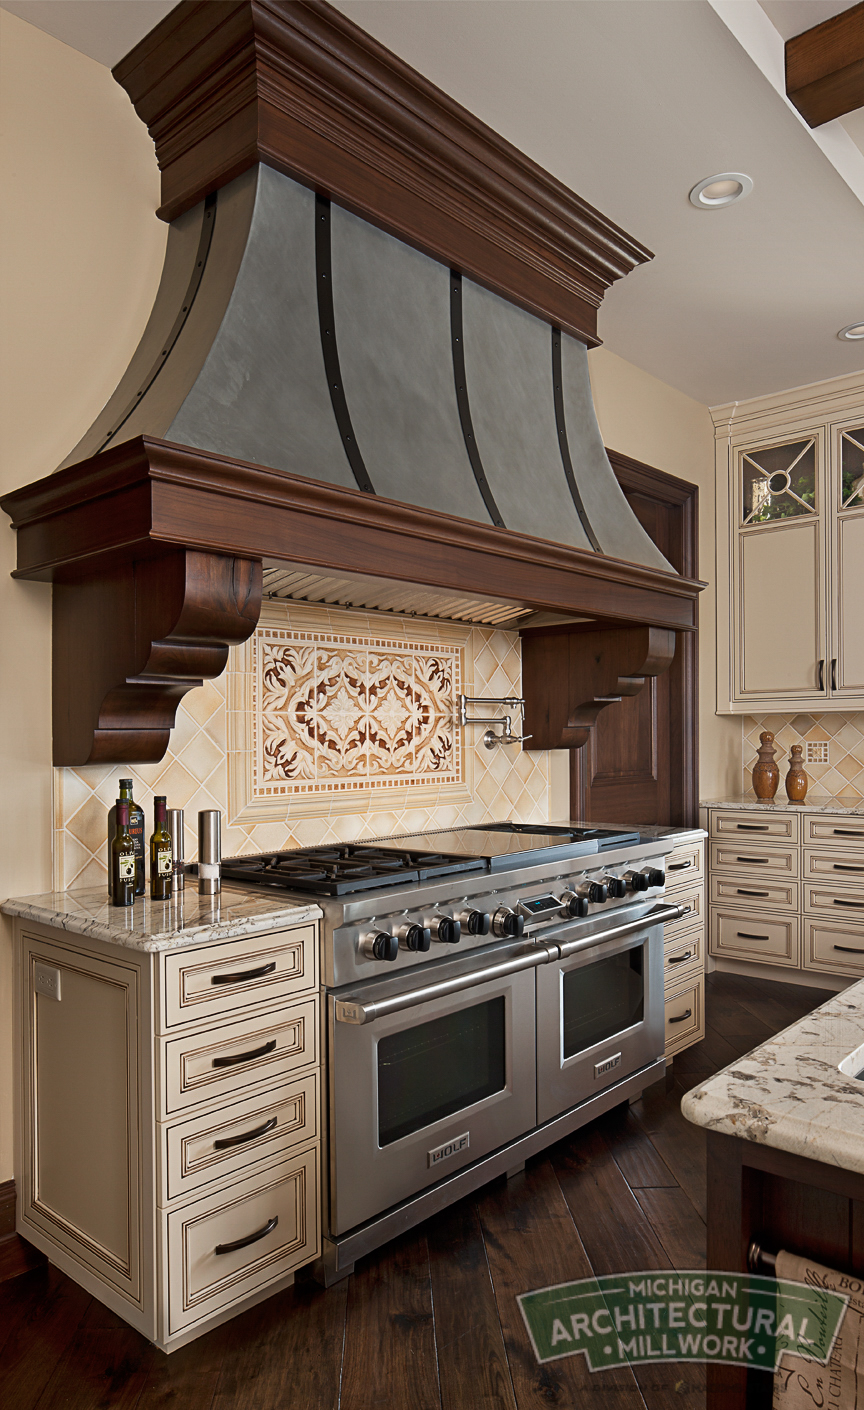 Michigan Architectural Millwork- Moulding and Millwork Photo-38.jpg